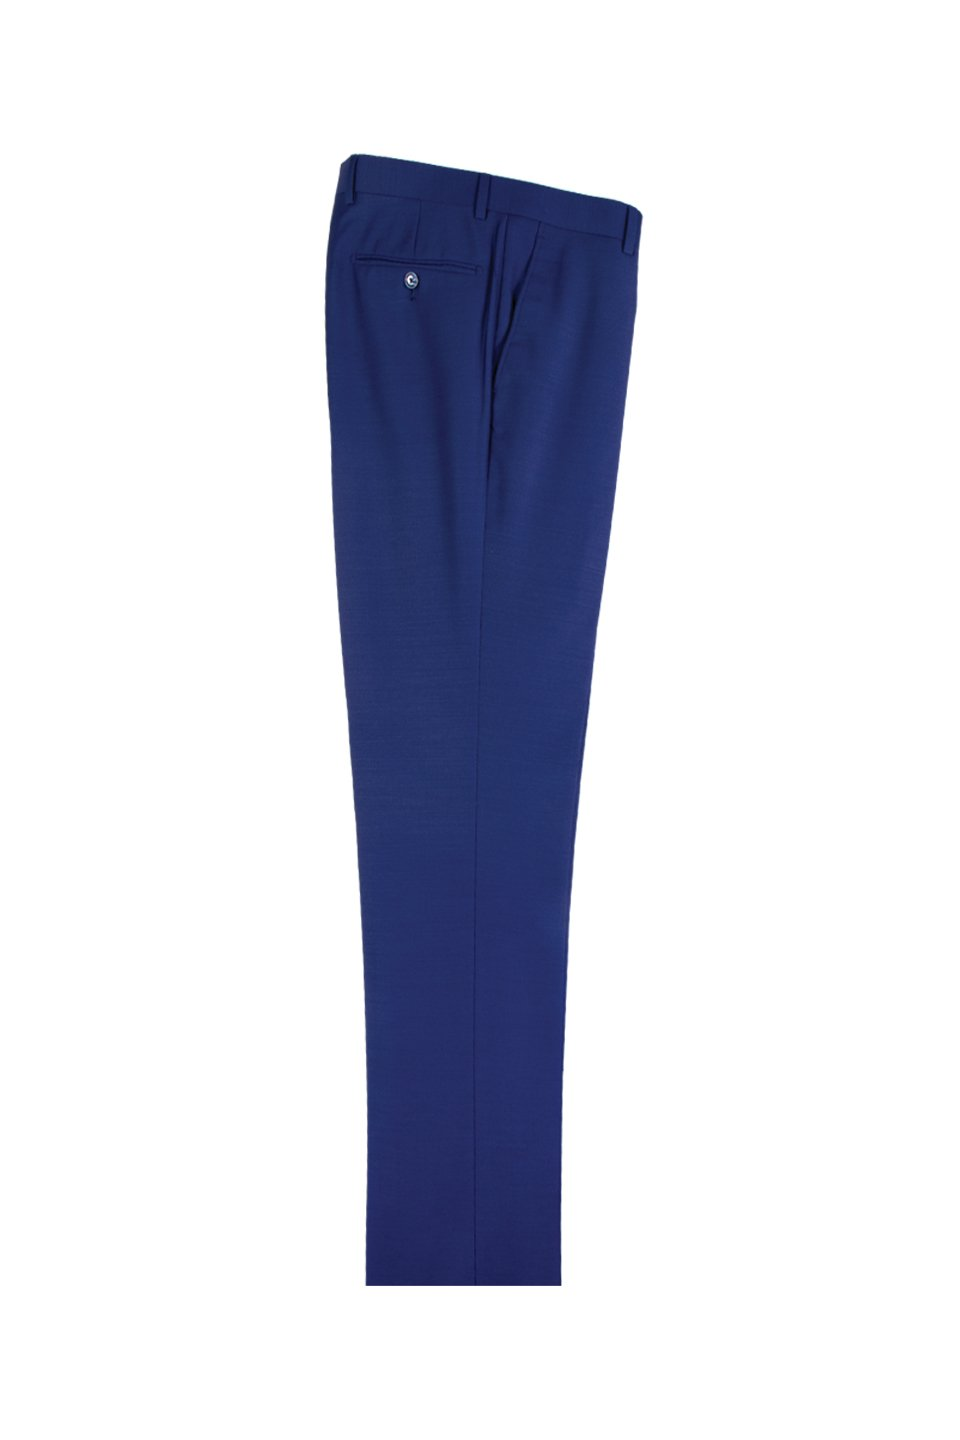 Tiglio New Blue Solid Flat Front Dress Pants